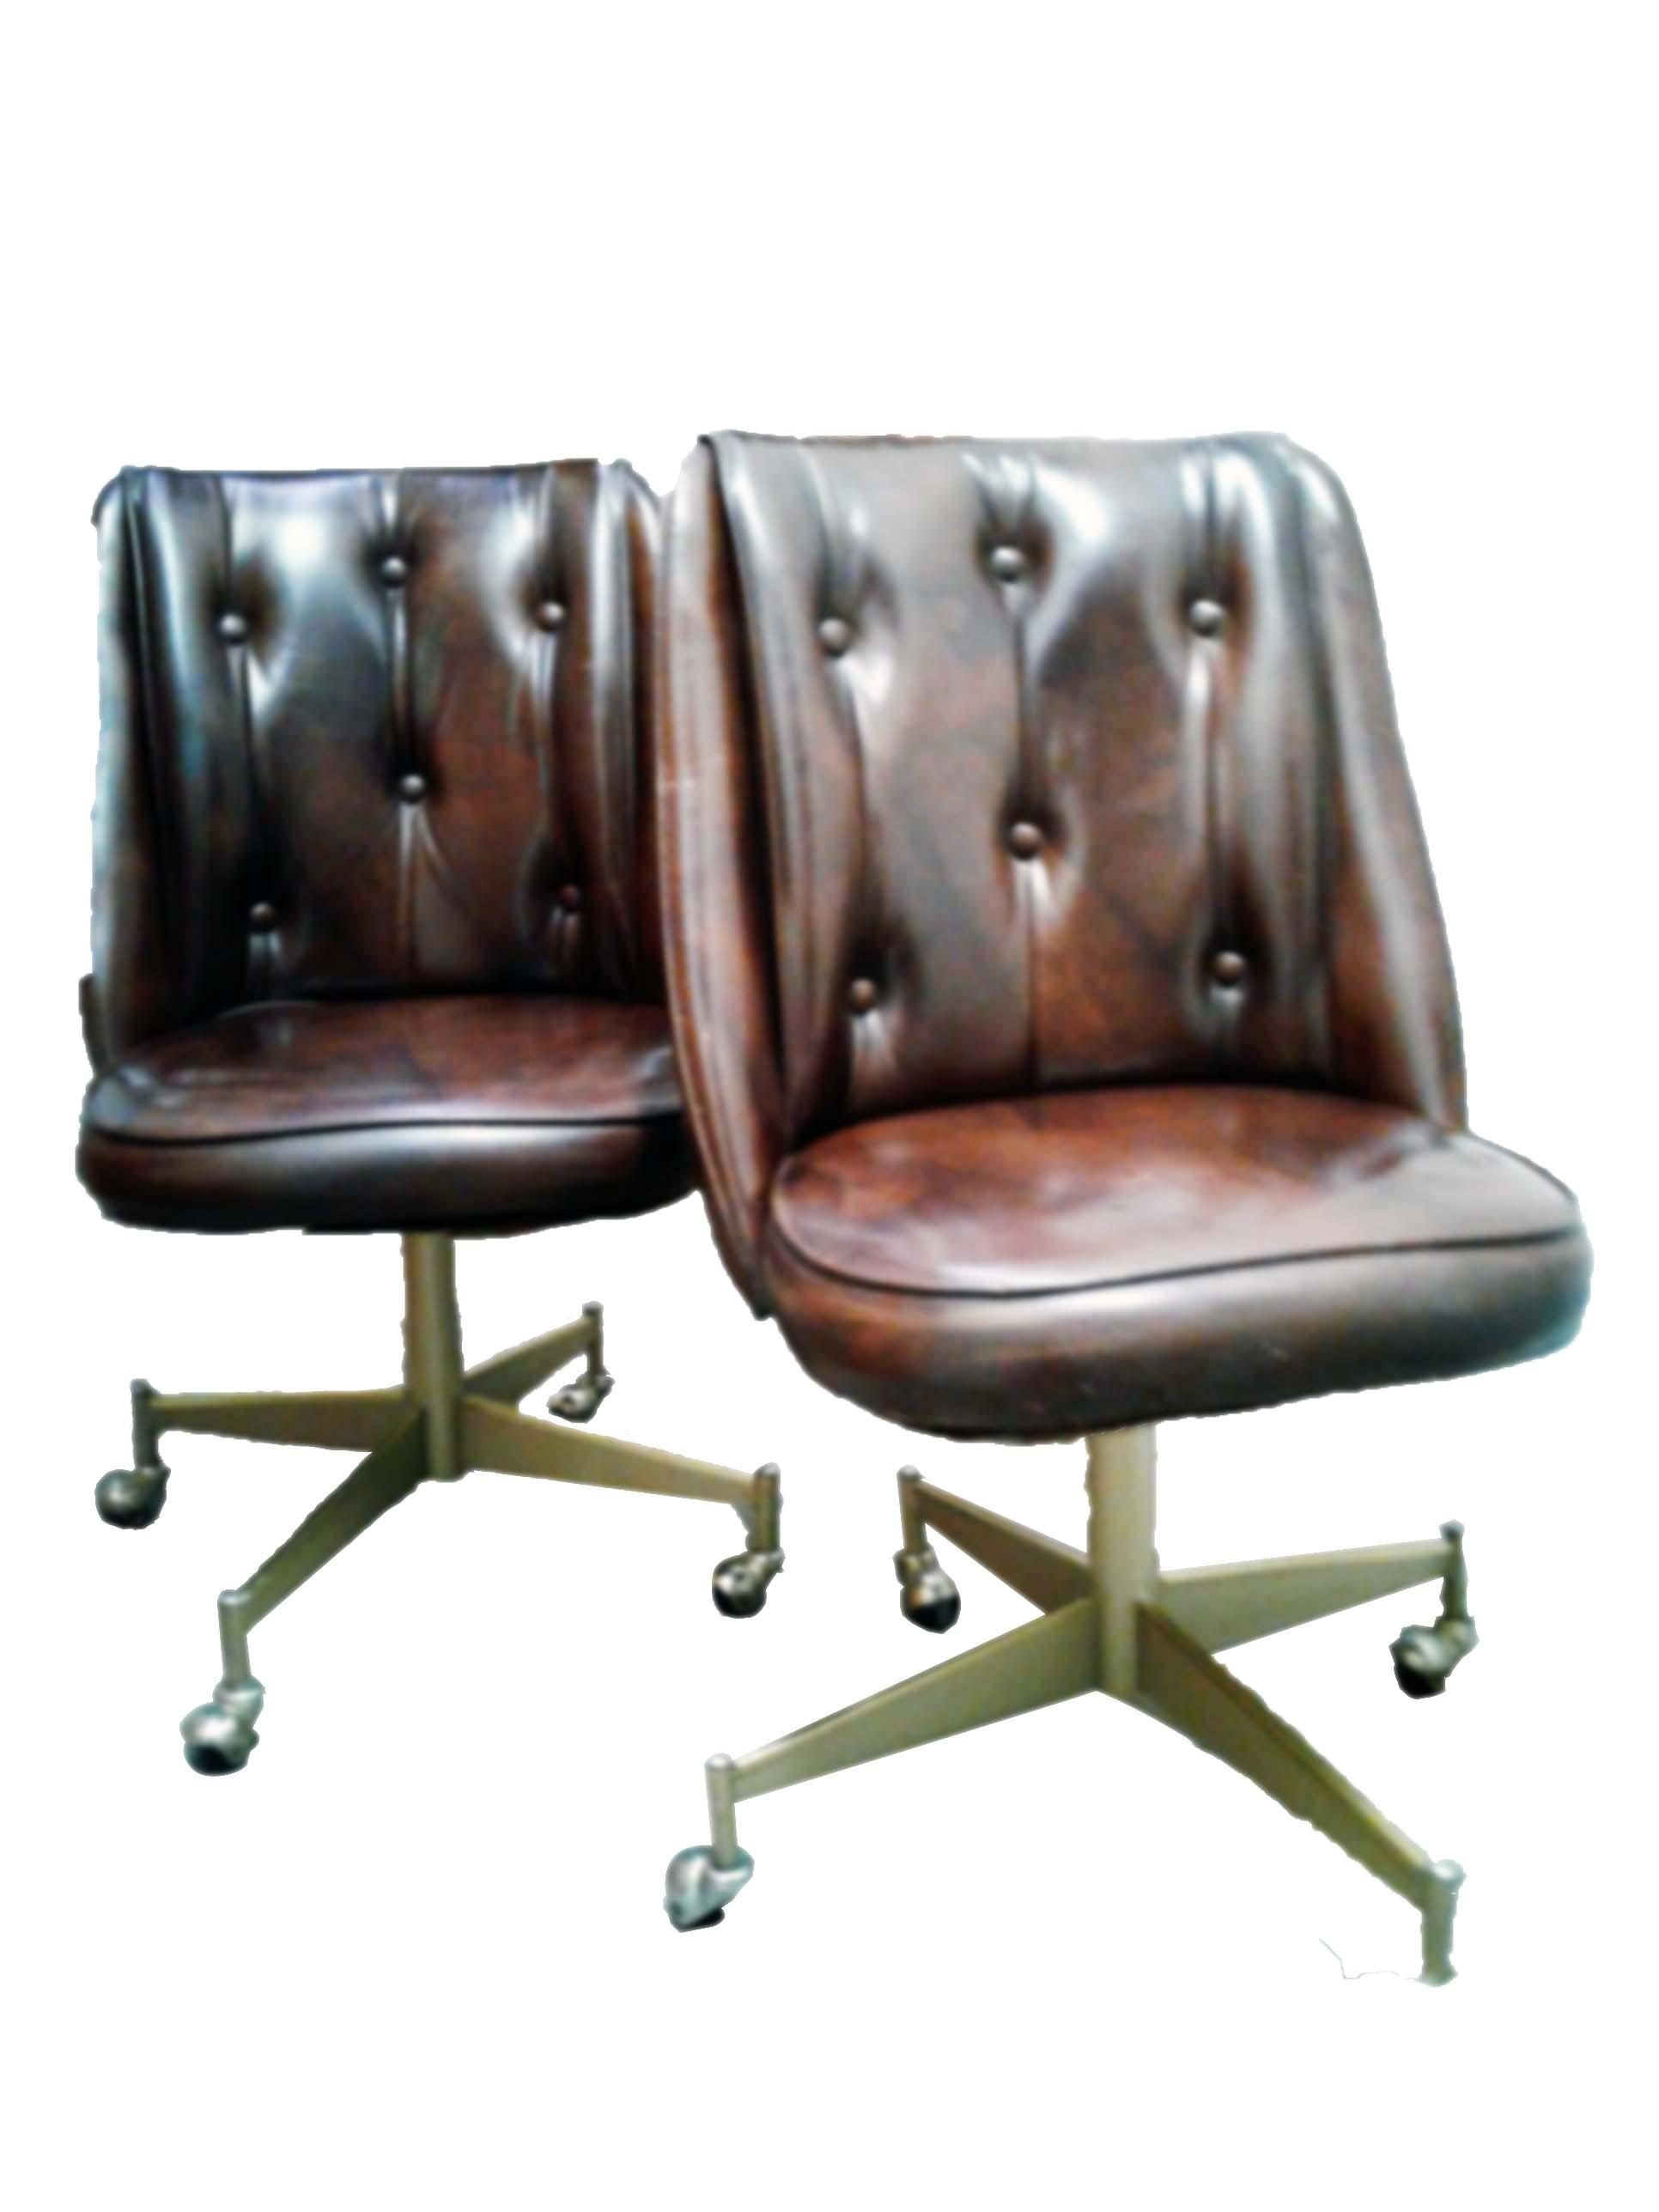 Vintage Douglas Vinyl Chairs On Star Base With Casters A